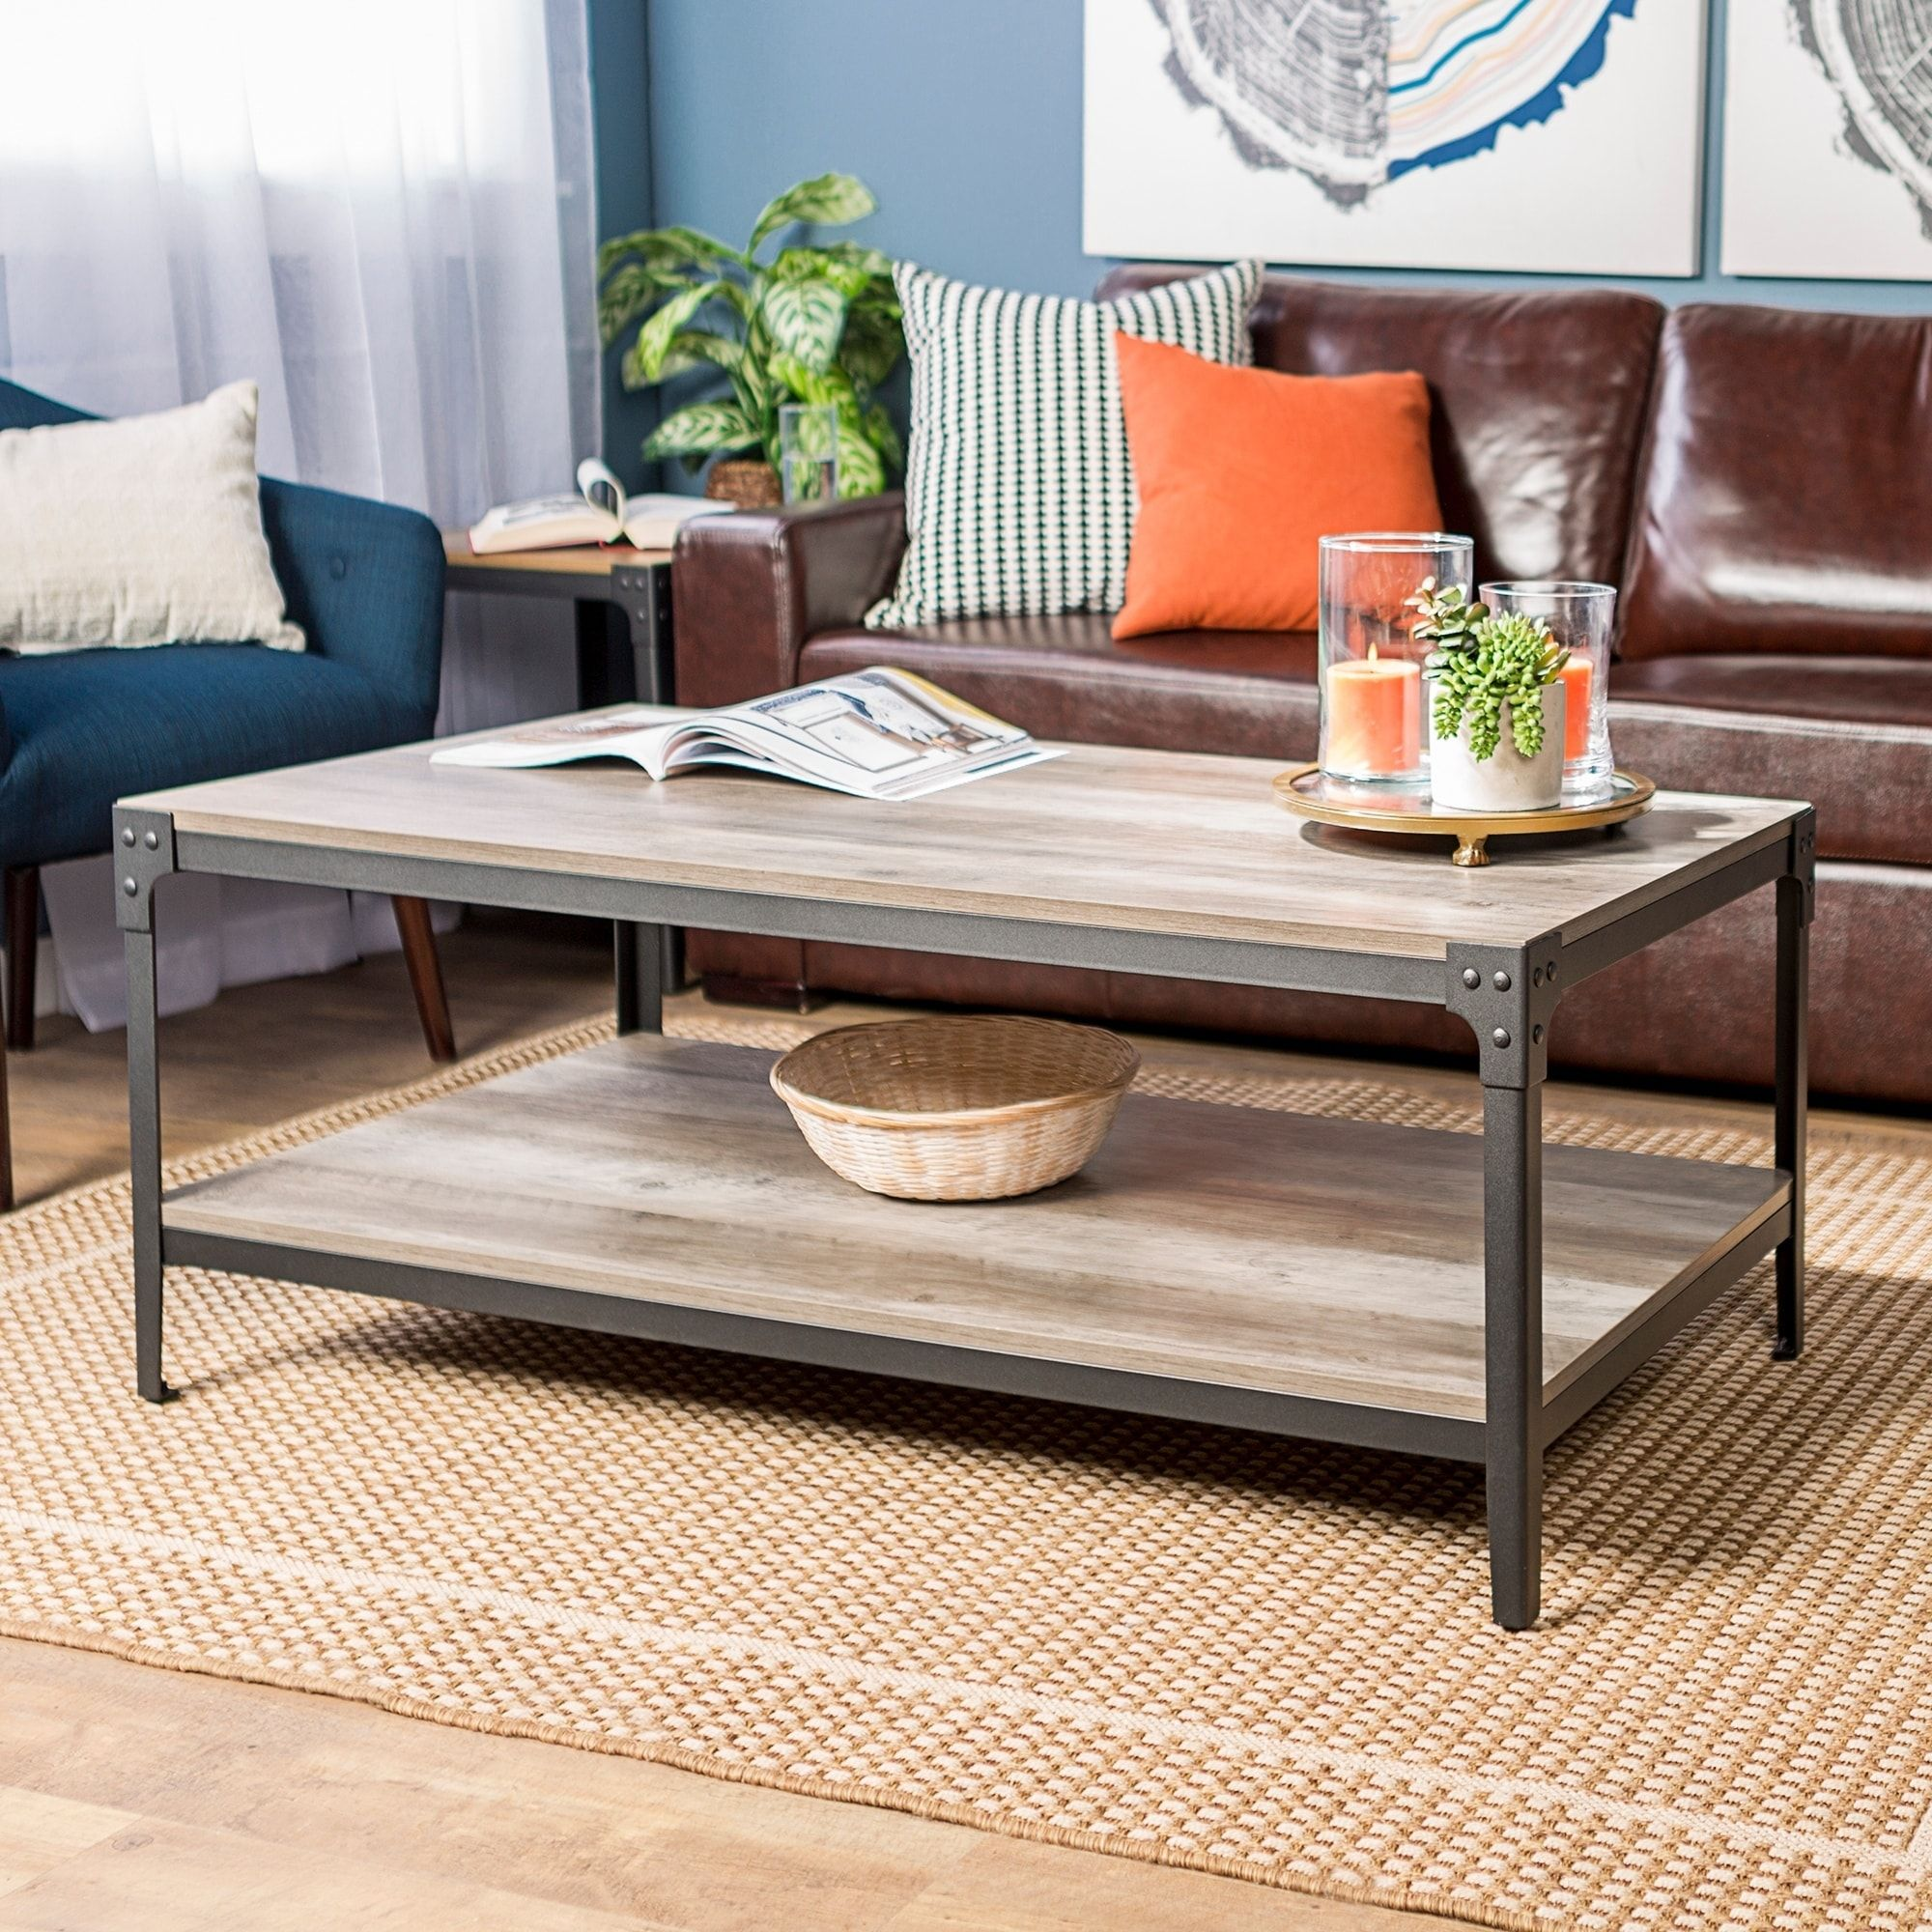 Overstock Com Online Shopping Bedding Furniture Electronics Jewelry Clothing More Coffee Table Coffee Table Wood Iron Coffee Table [ 2000 x 2000 Pixel ]